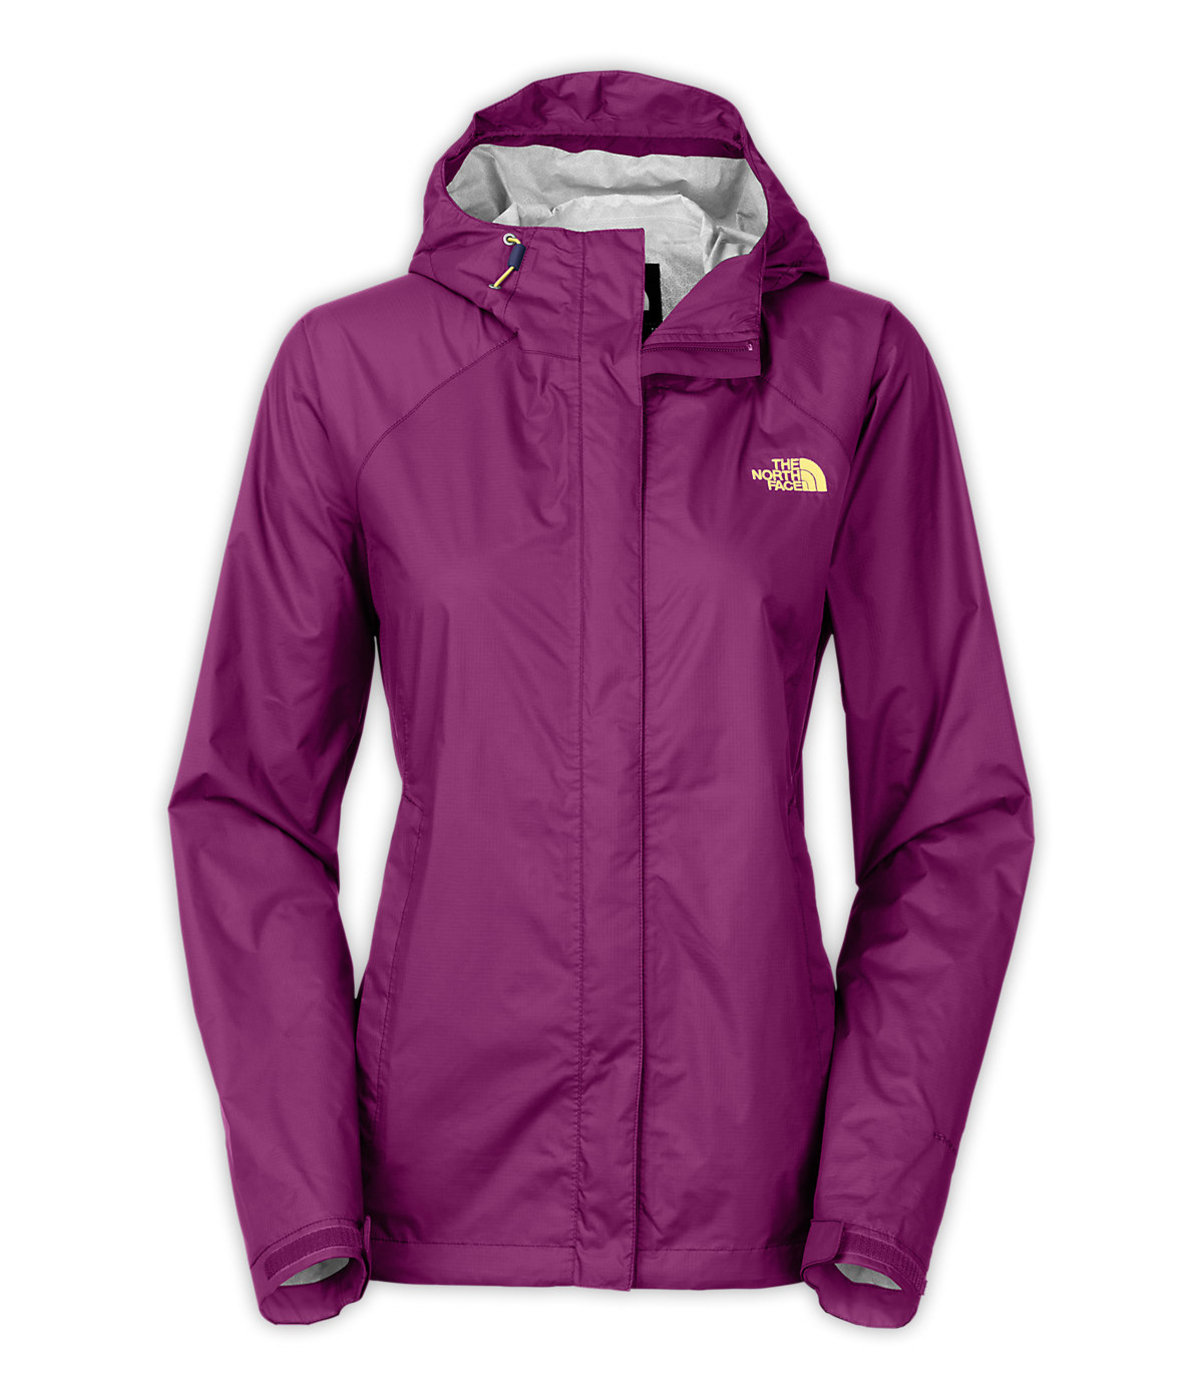 8d062bd8ff The North Face Women s Venture Rain Jacket